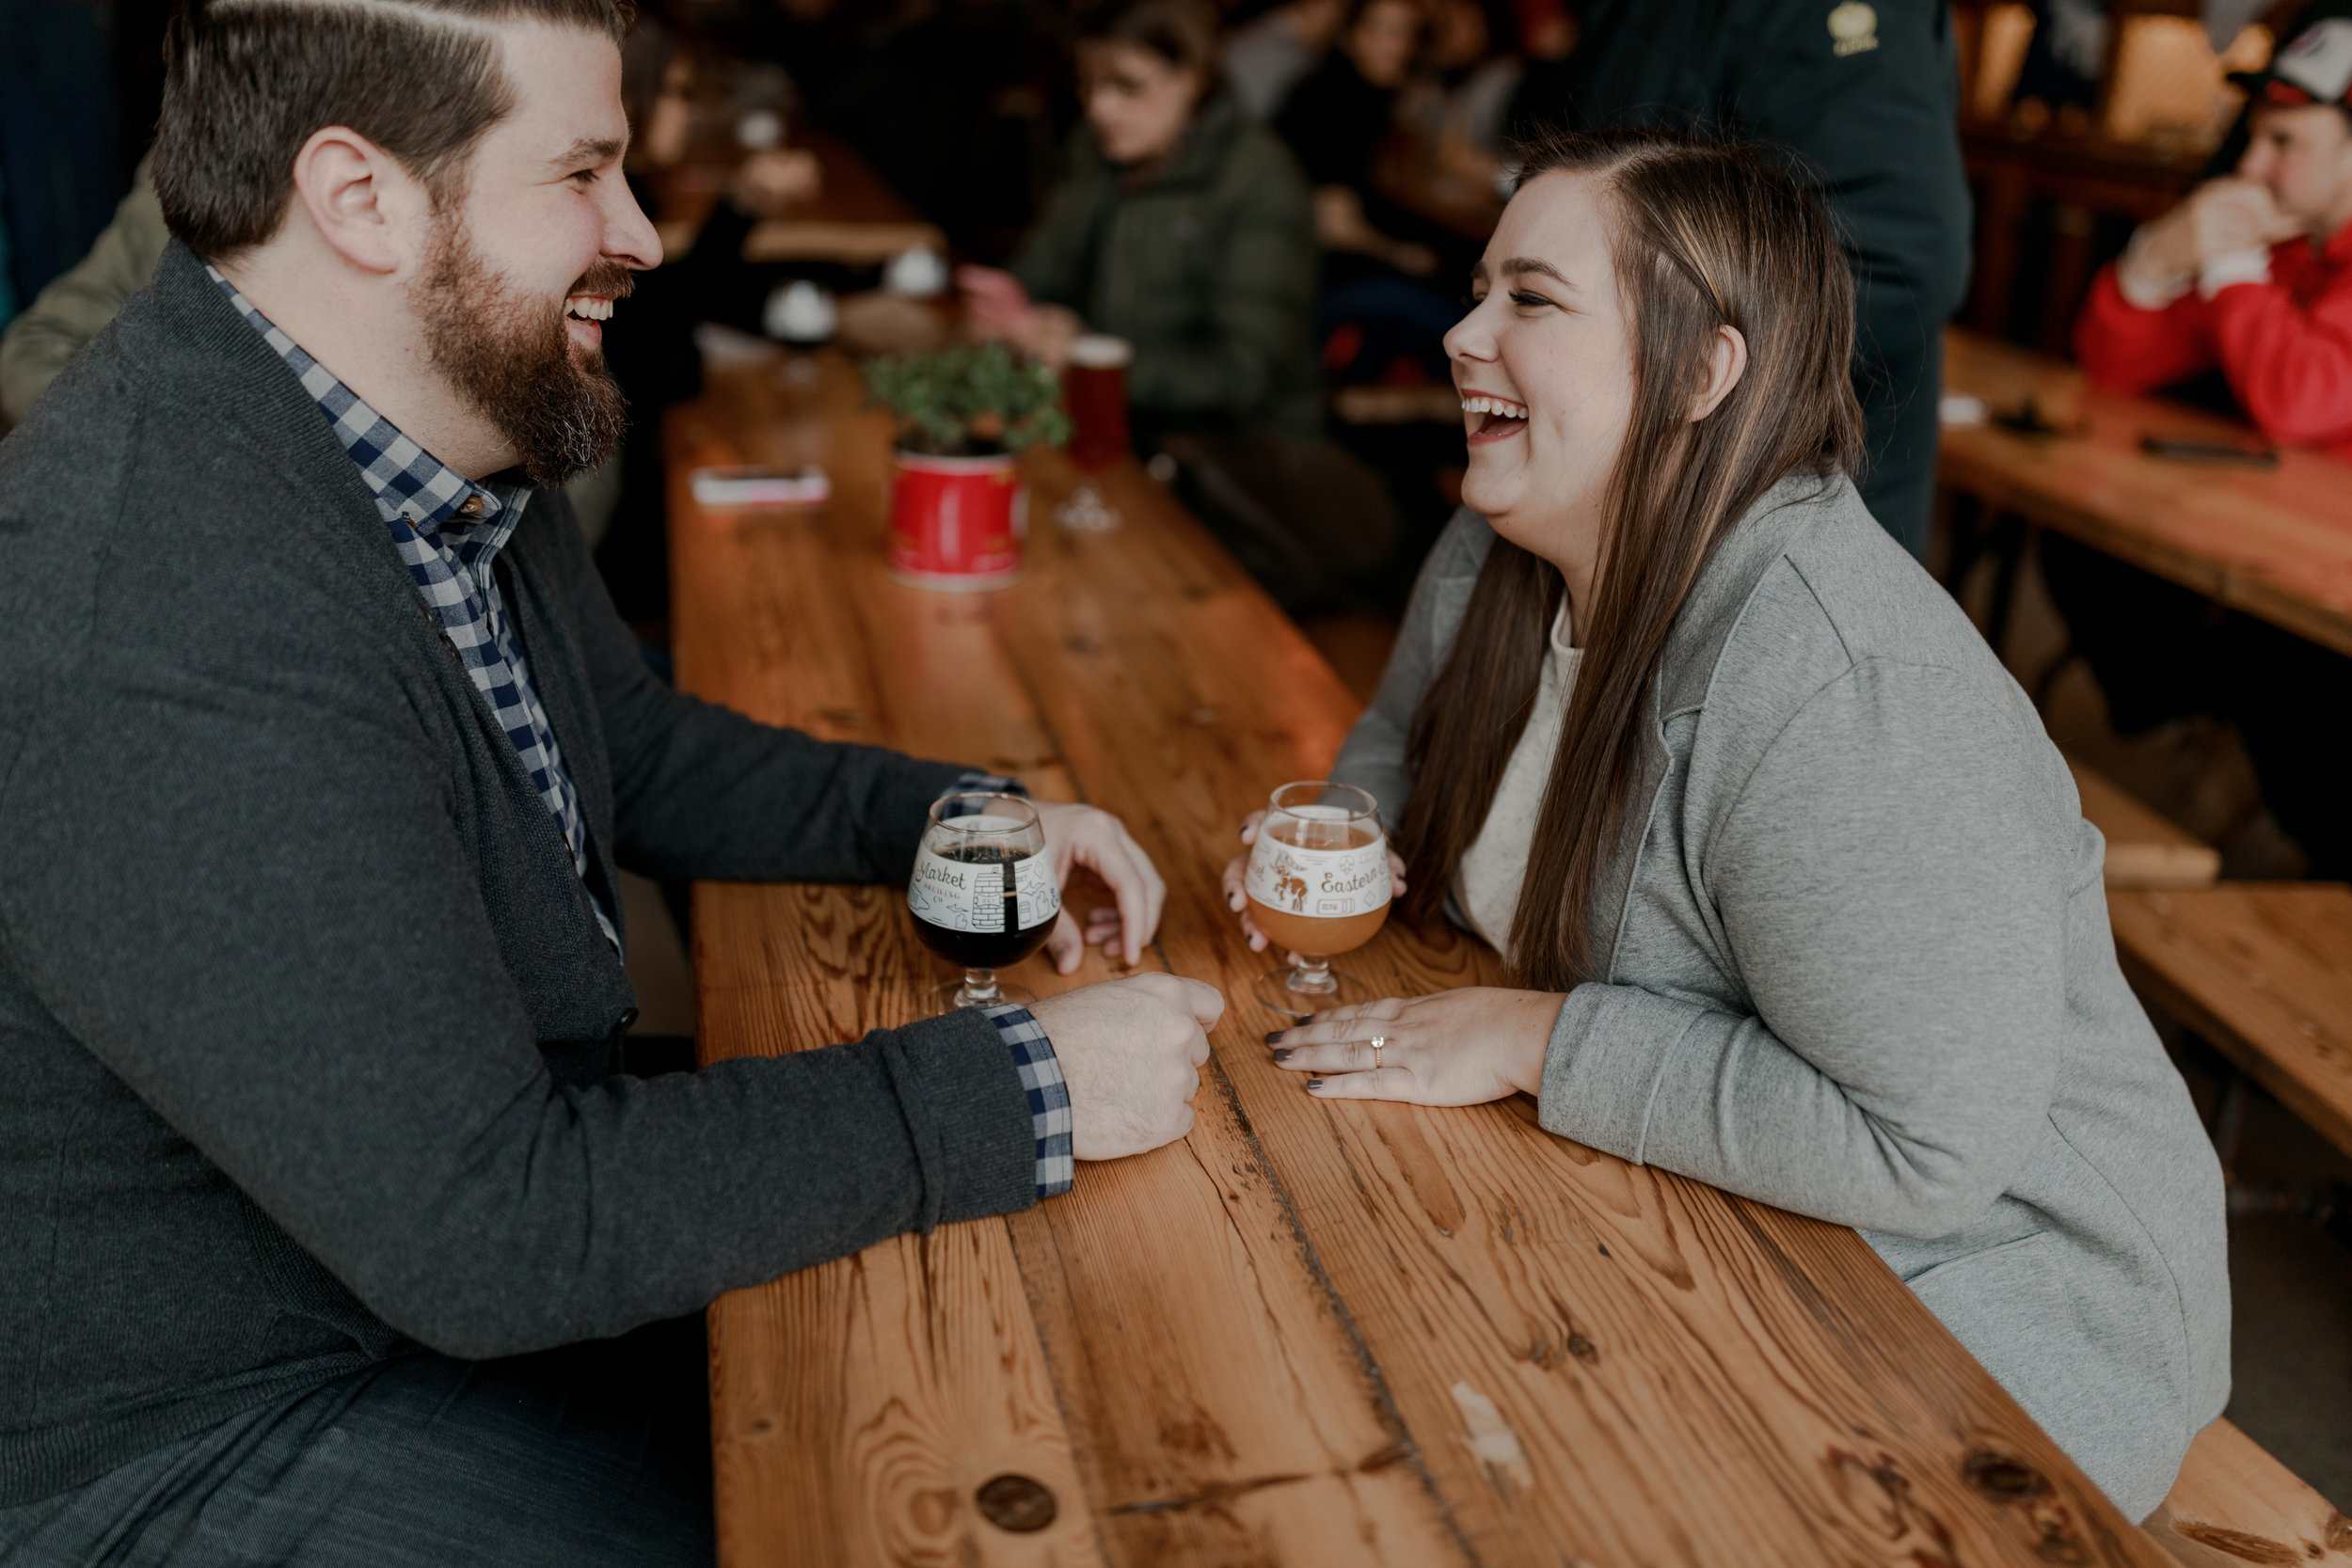 SARAH + DAVID - These two are getting married in less than two weeks so I HAD to share this super fun engagement session we did in Detroit. These guys know how to have a good time and I can't wait to see what their wedding day holds!